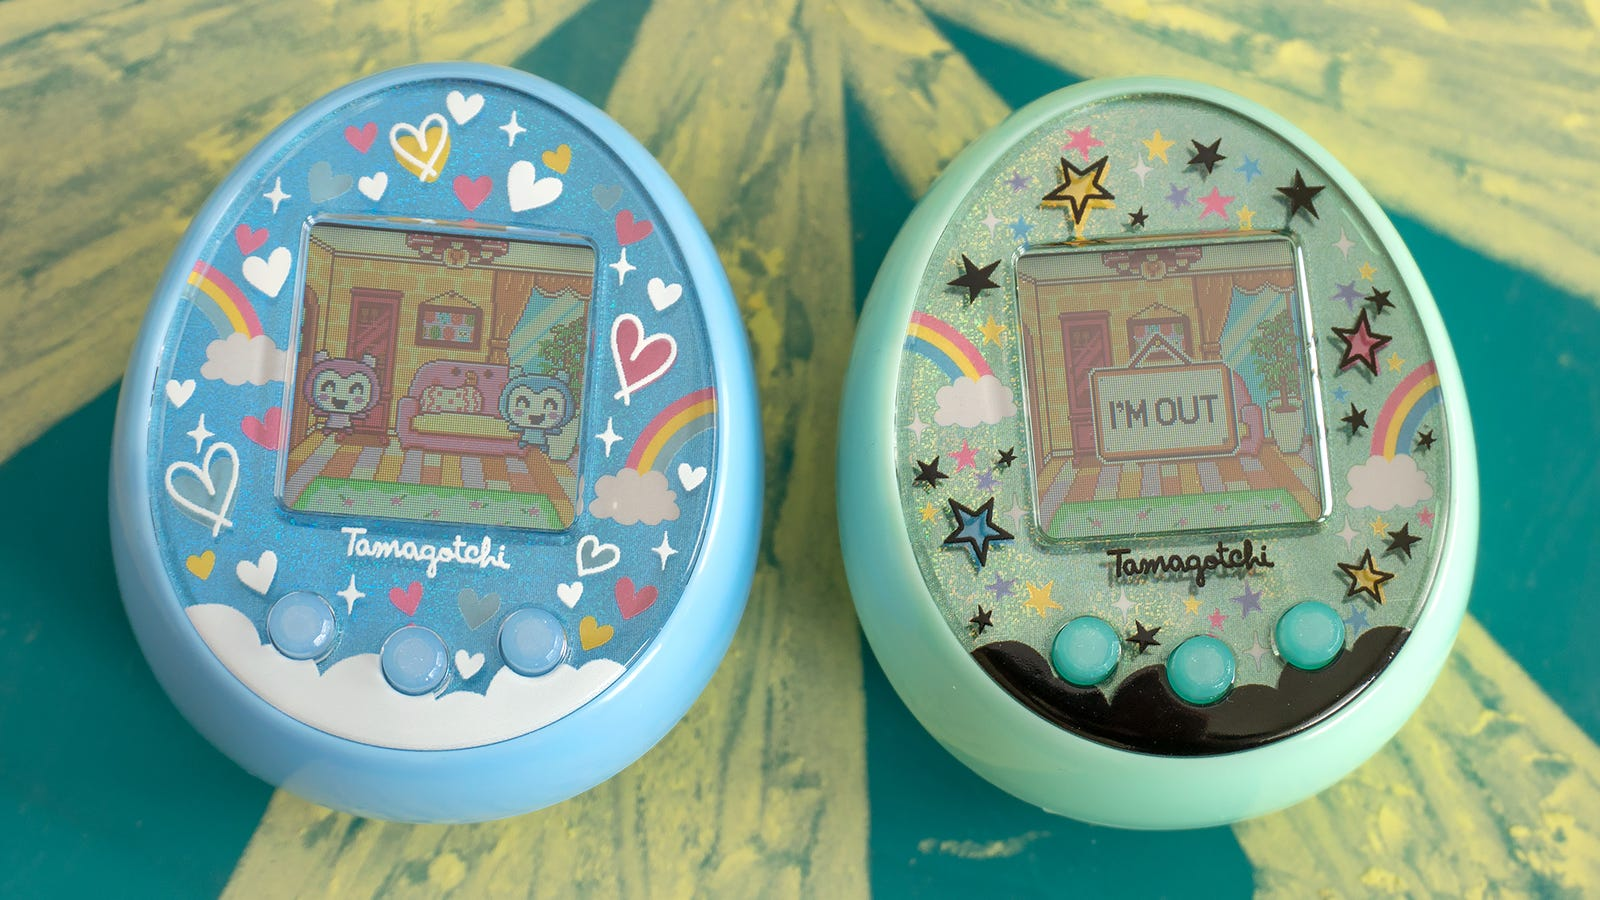 Most of the device to device interactions are temporary, with your Tamagotchi returning home after just a minute or so.